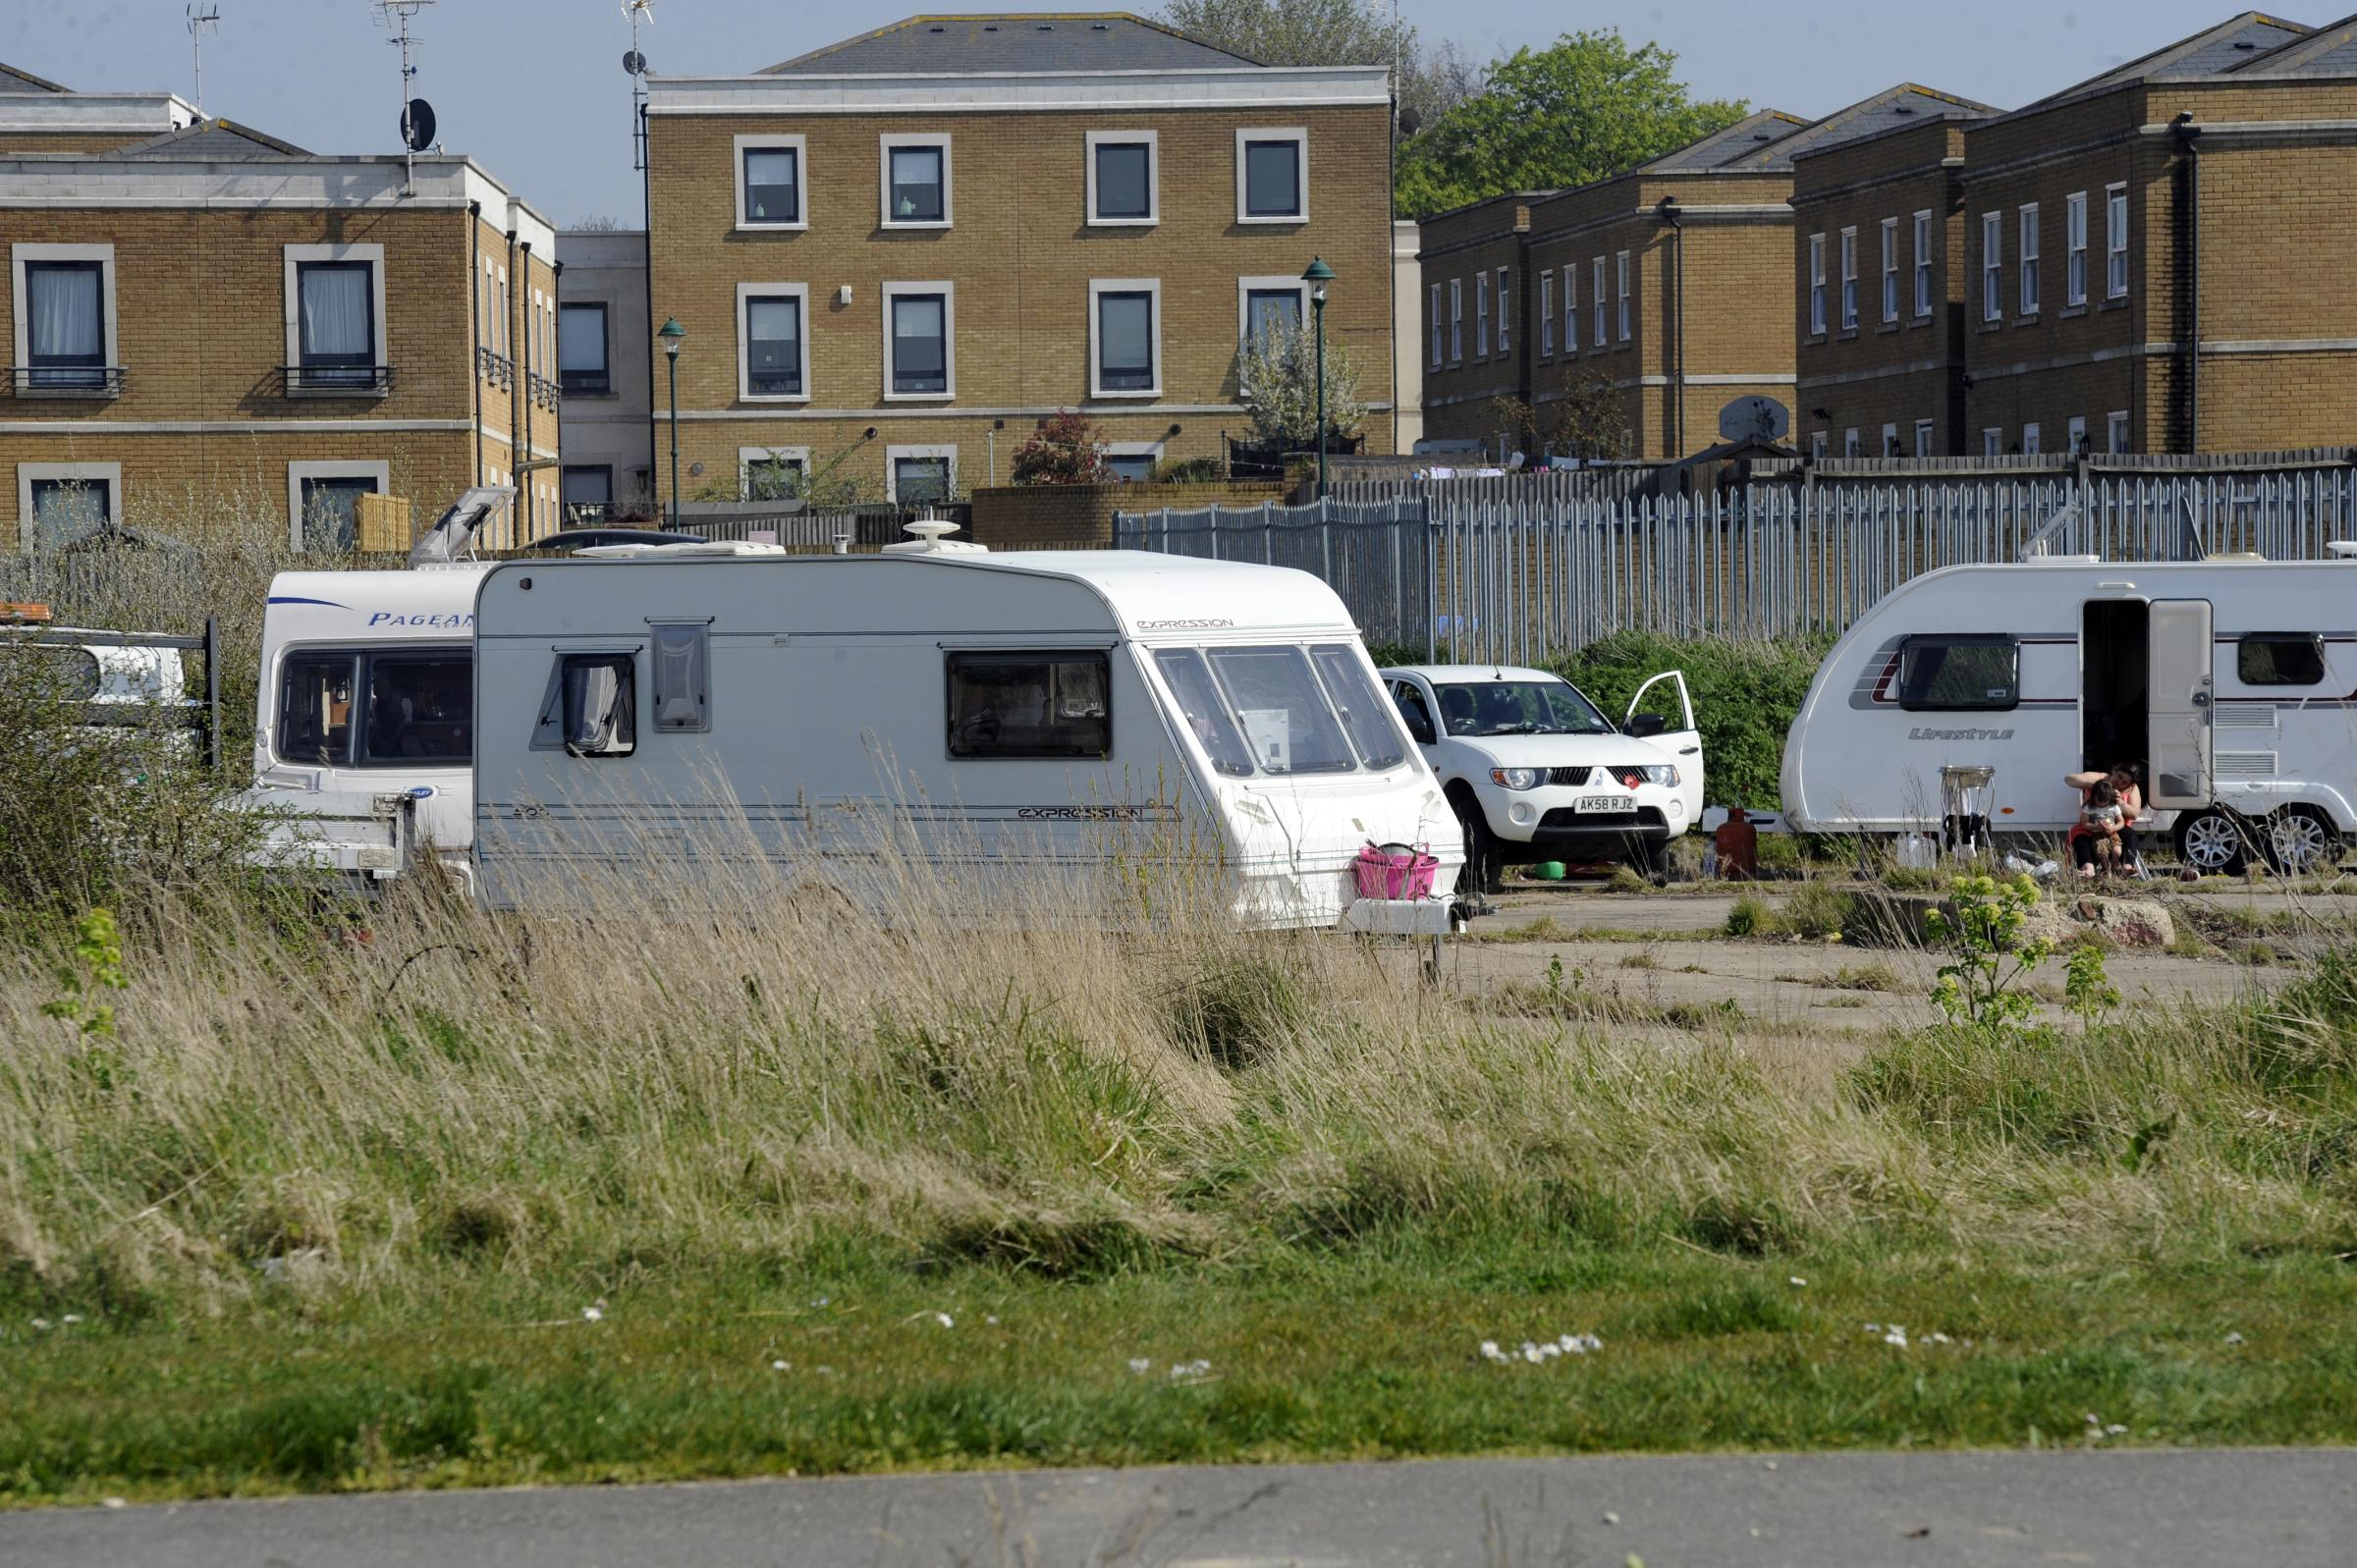 Arrivals - four traveller caravans have parked in Shoebury